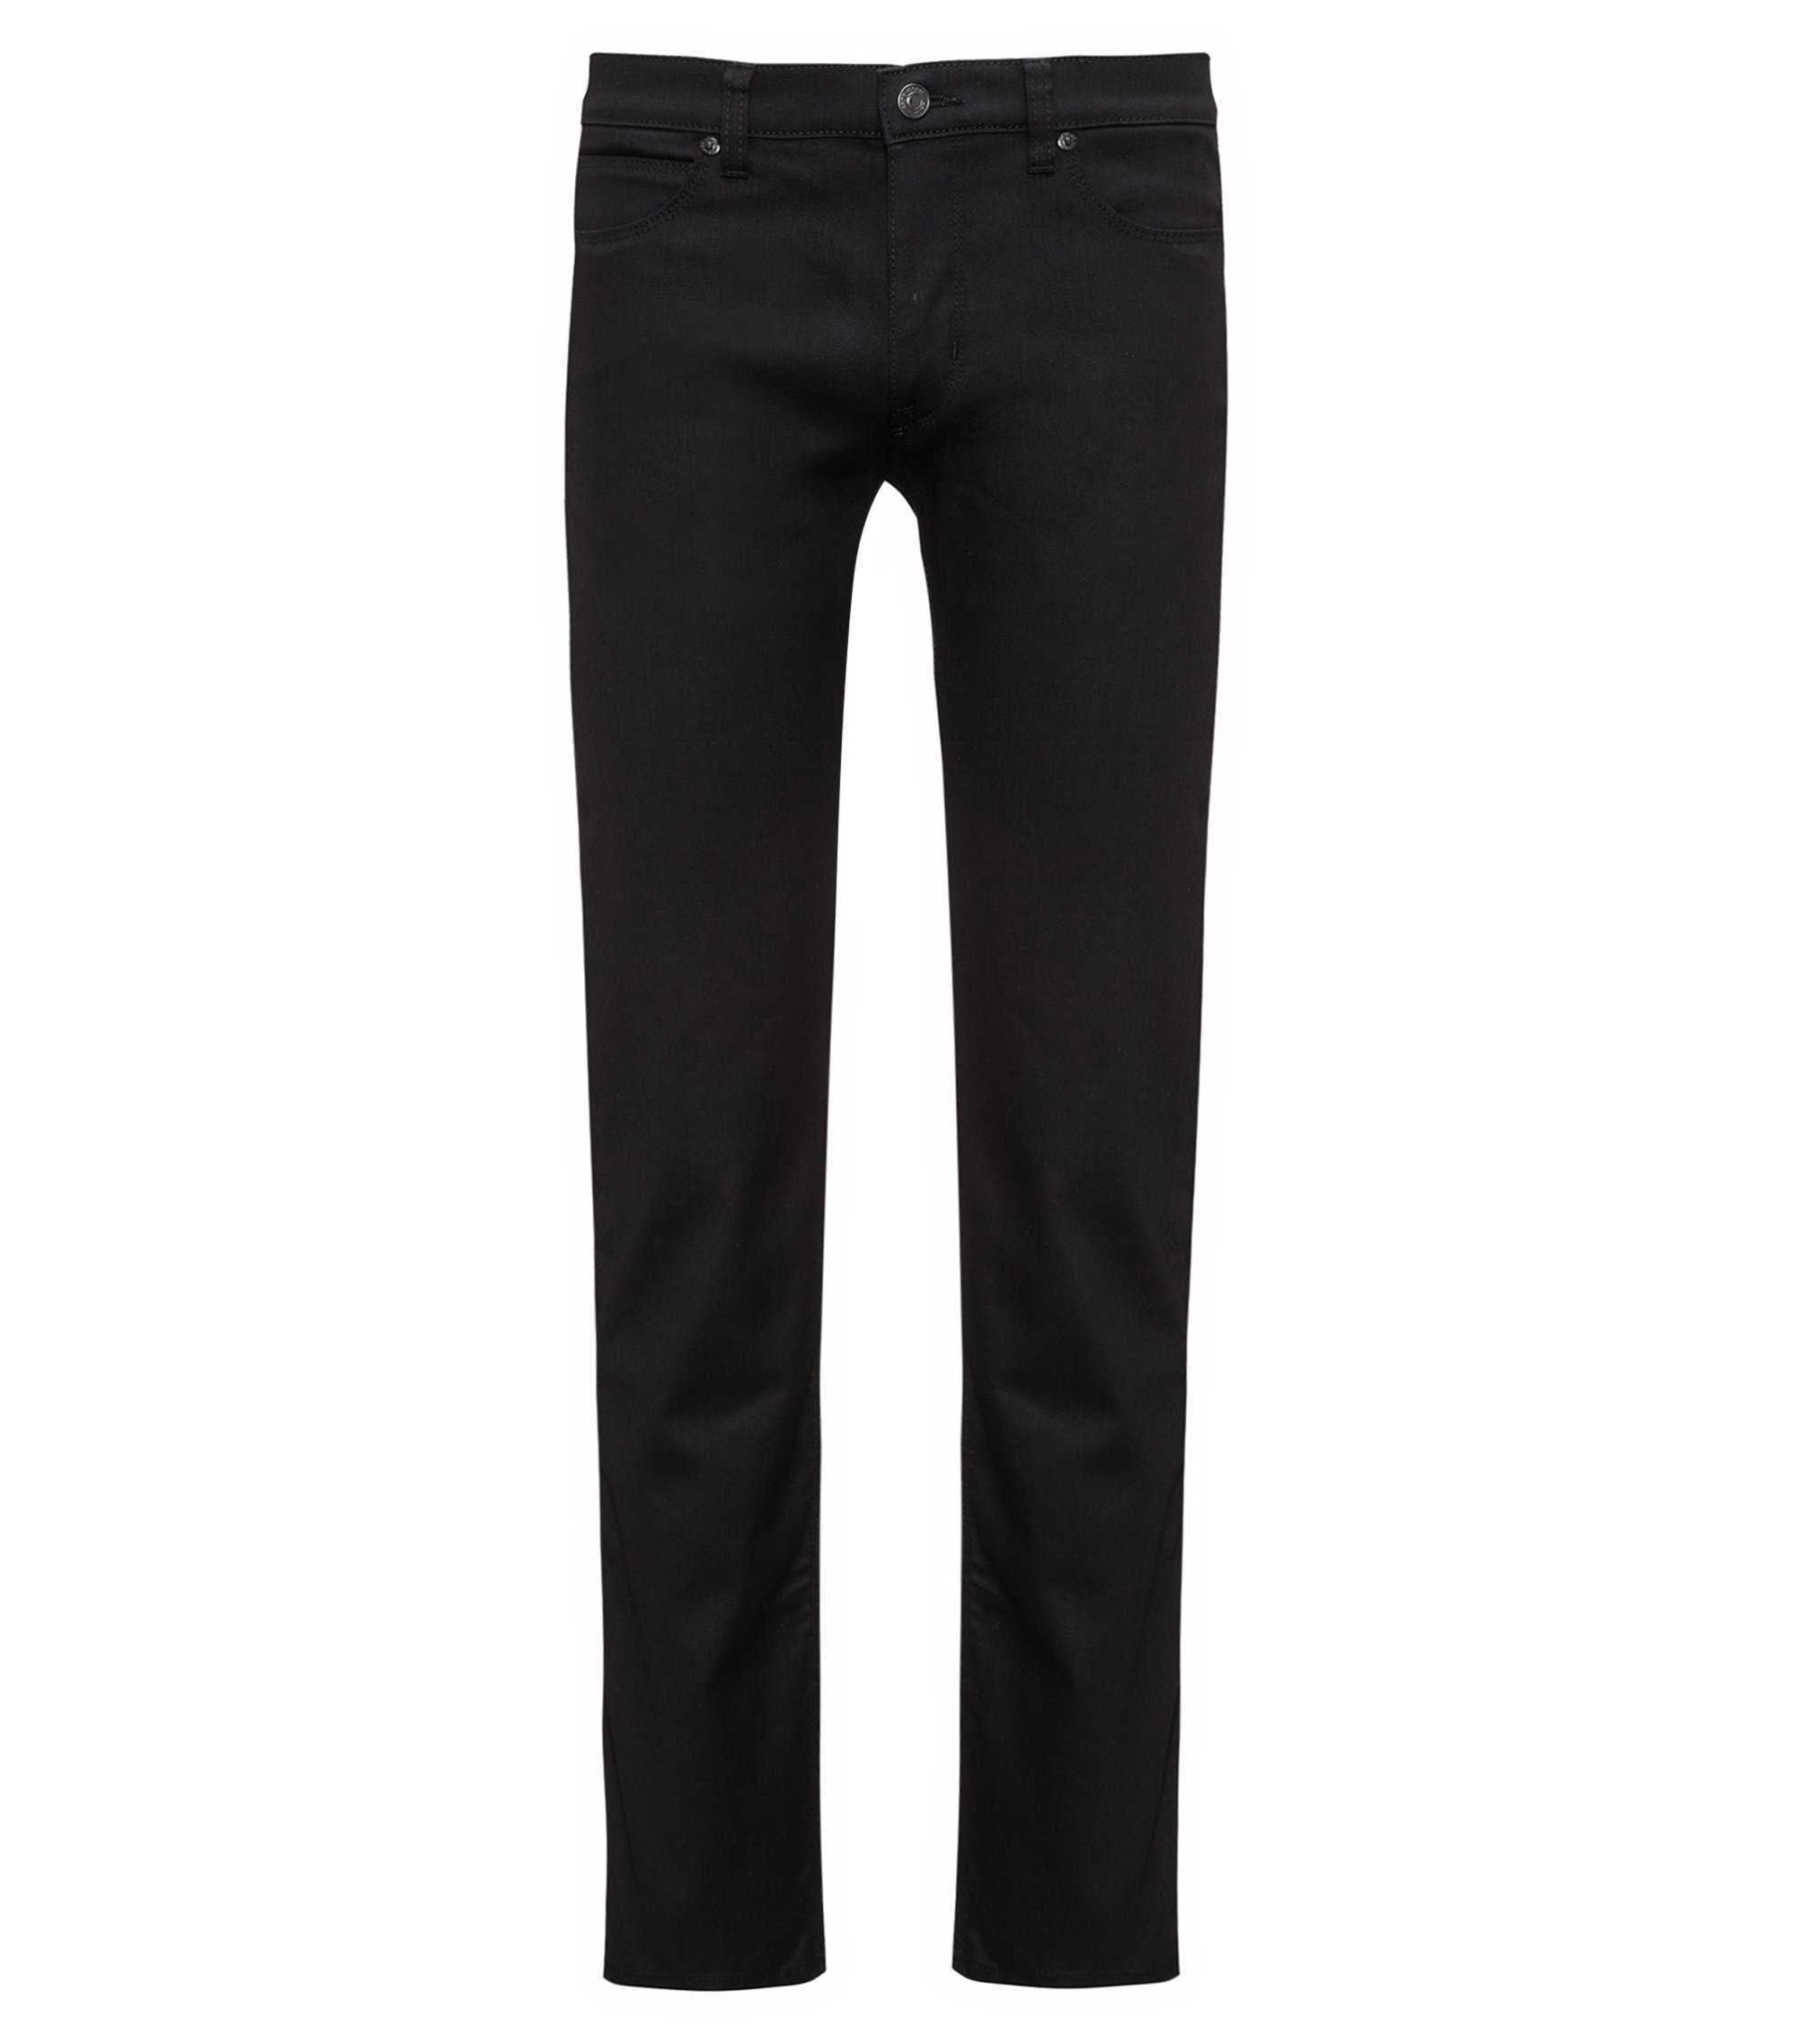 Stretch Cotton Jean, Slim Fit | HUGO 708, Black